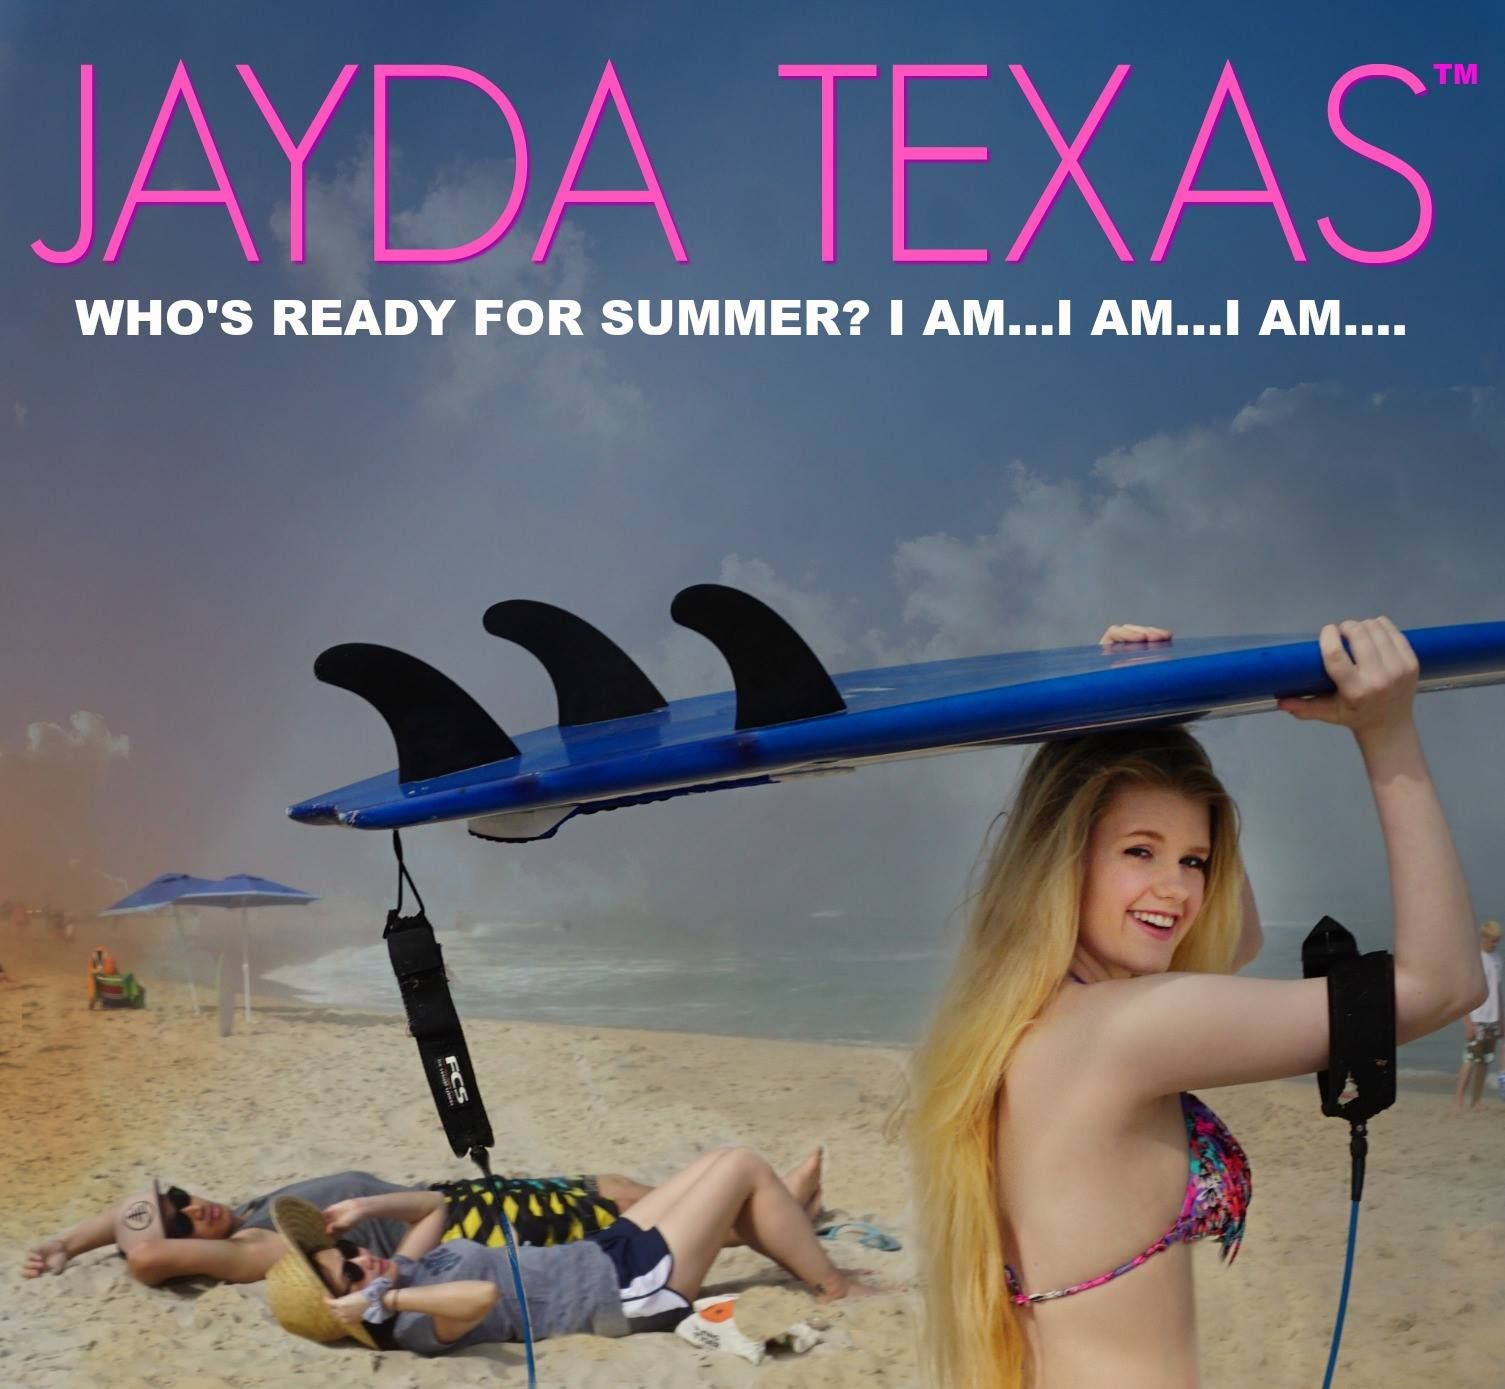 16 year old singer/songwriter Jayda Texas having fun at the beach in New Jersey.